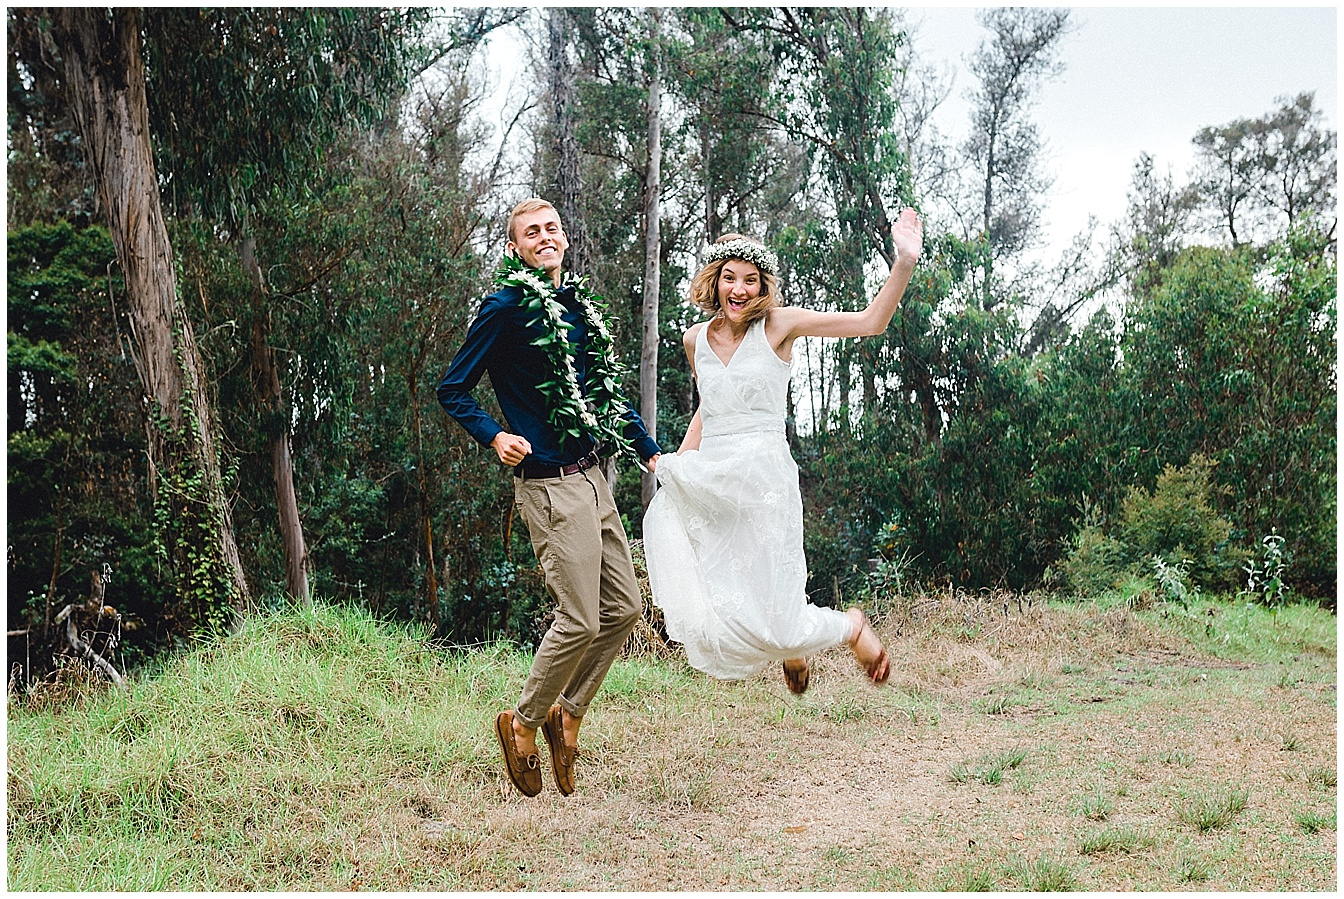 Maui bride and groom jumping for joy